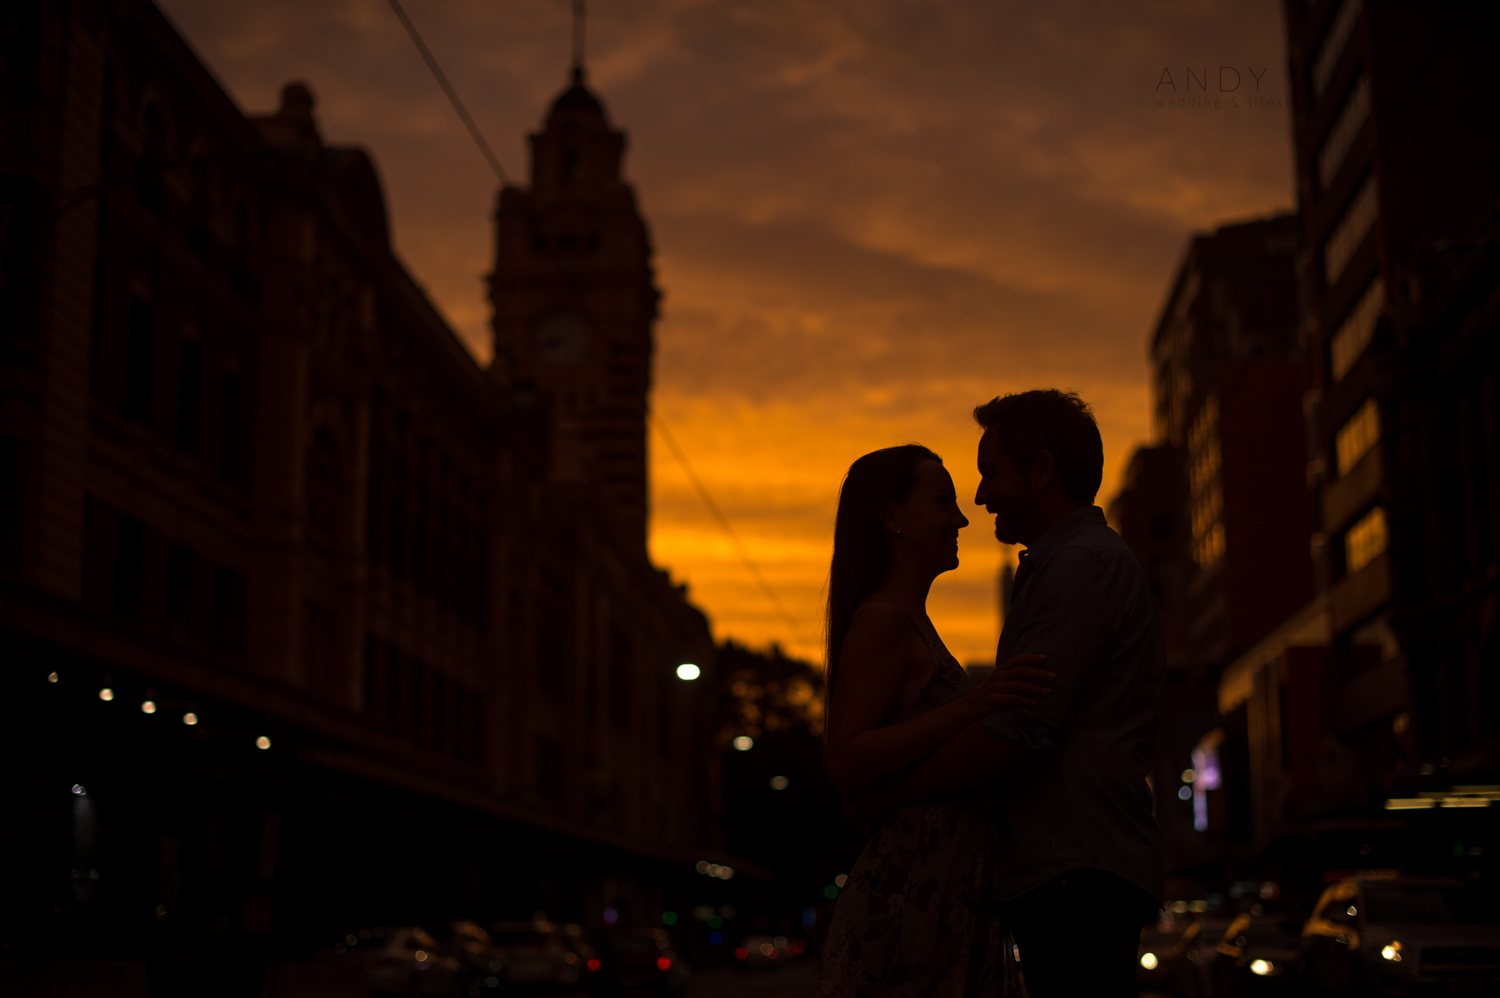 melbourne wedding photographer andy wayne-86.jpg